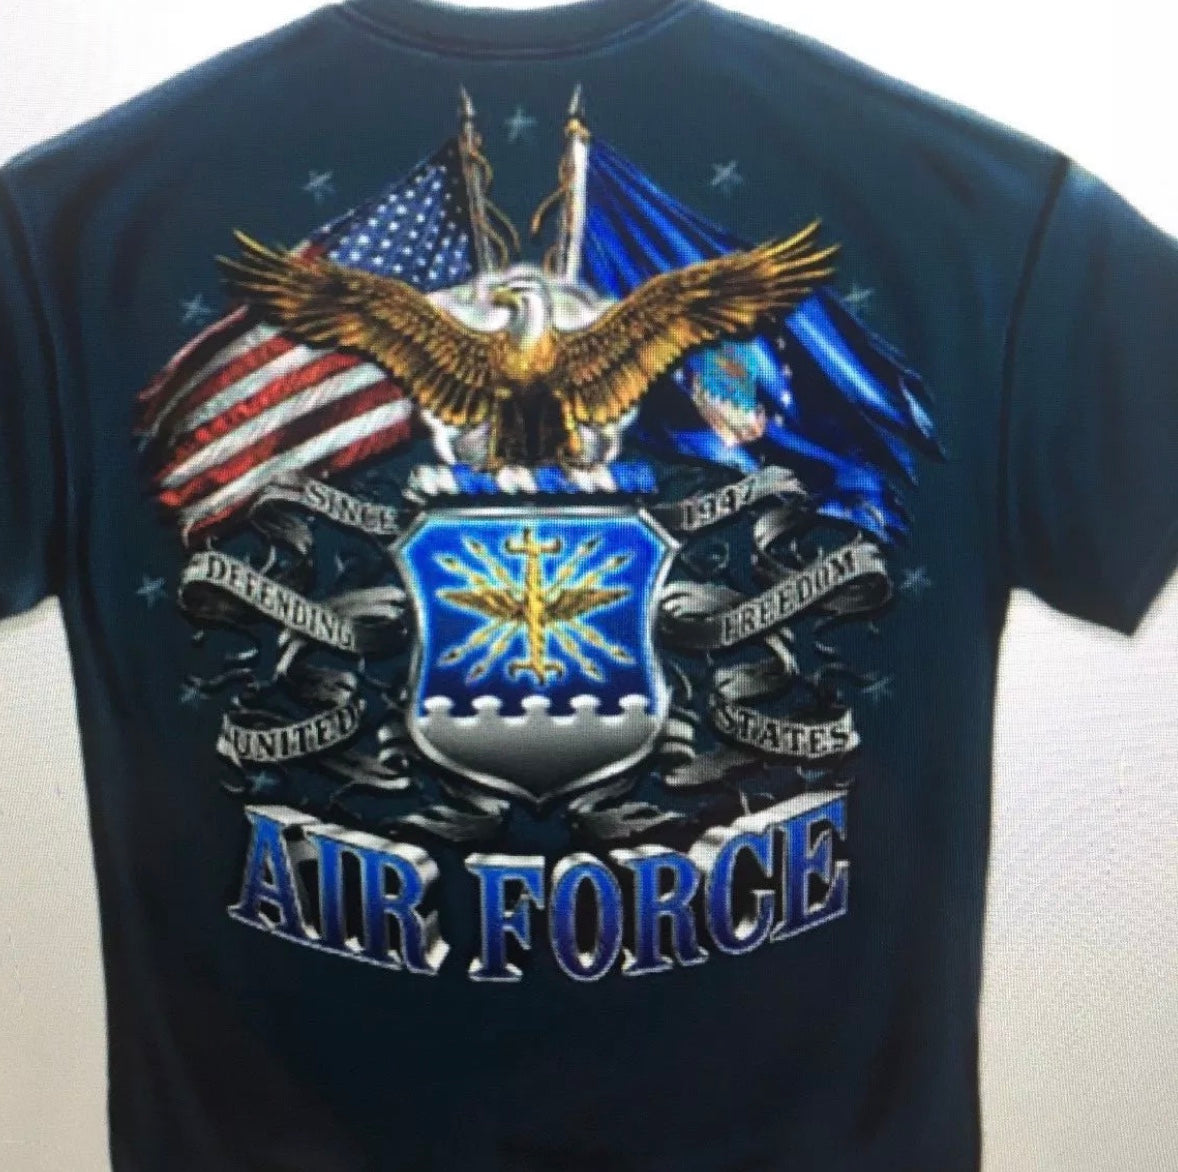 Airforce 2 Flag T-Shirt - The Wall Kids, Inc.